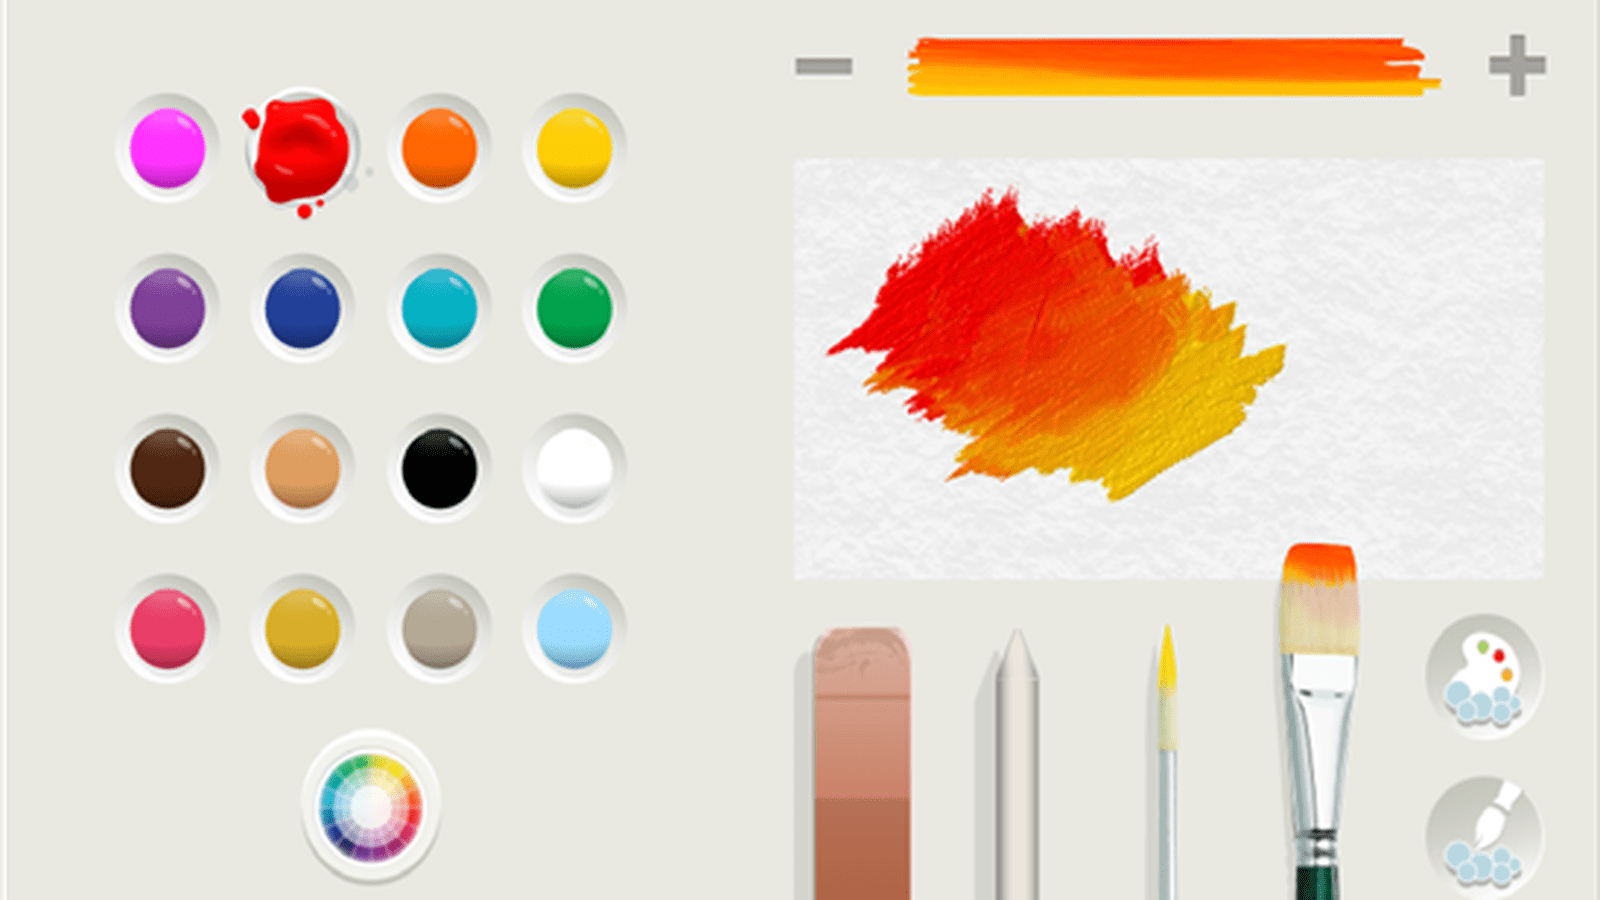 Fresh Paint App User Guide